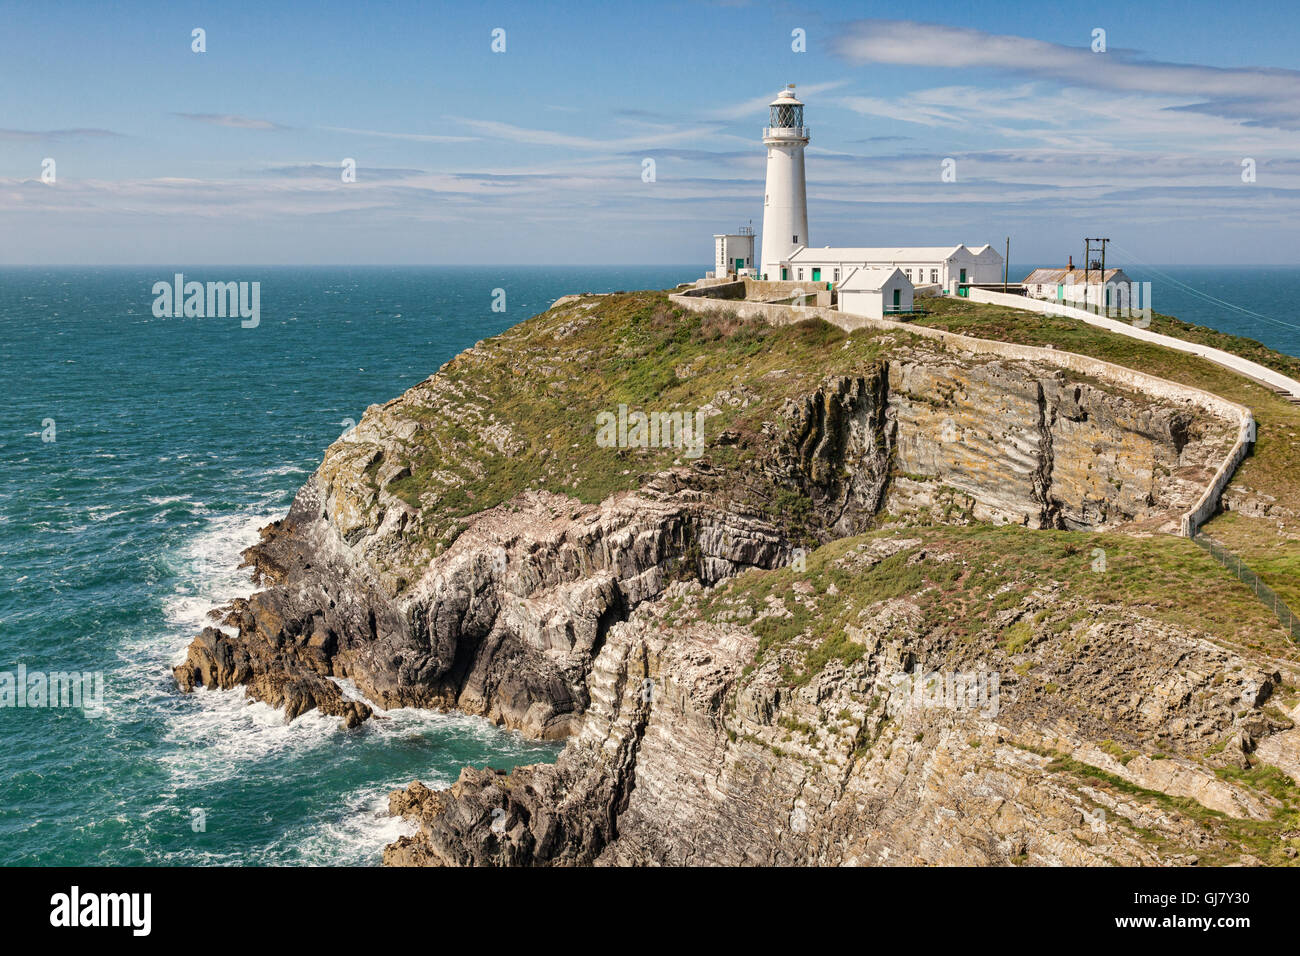 South Stack Lighthouse, Anglesey, Wales, UK - Stock Image